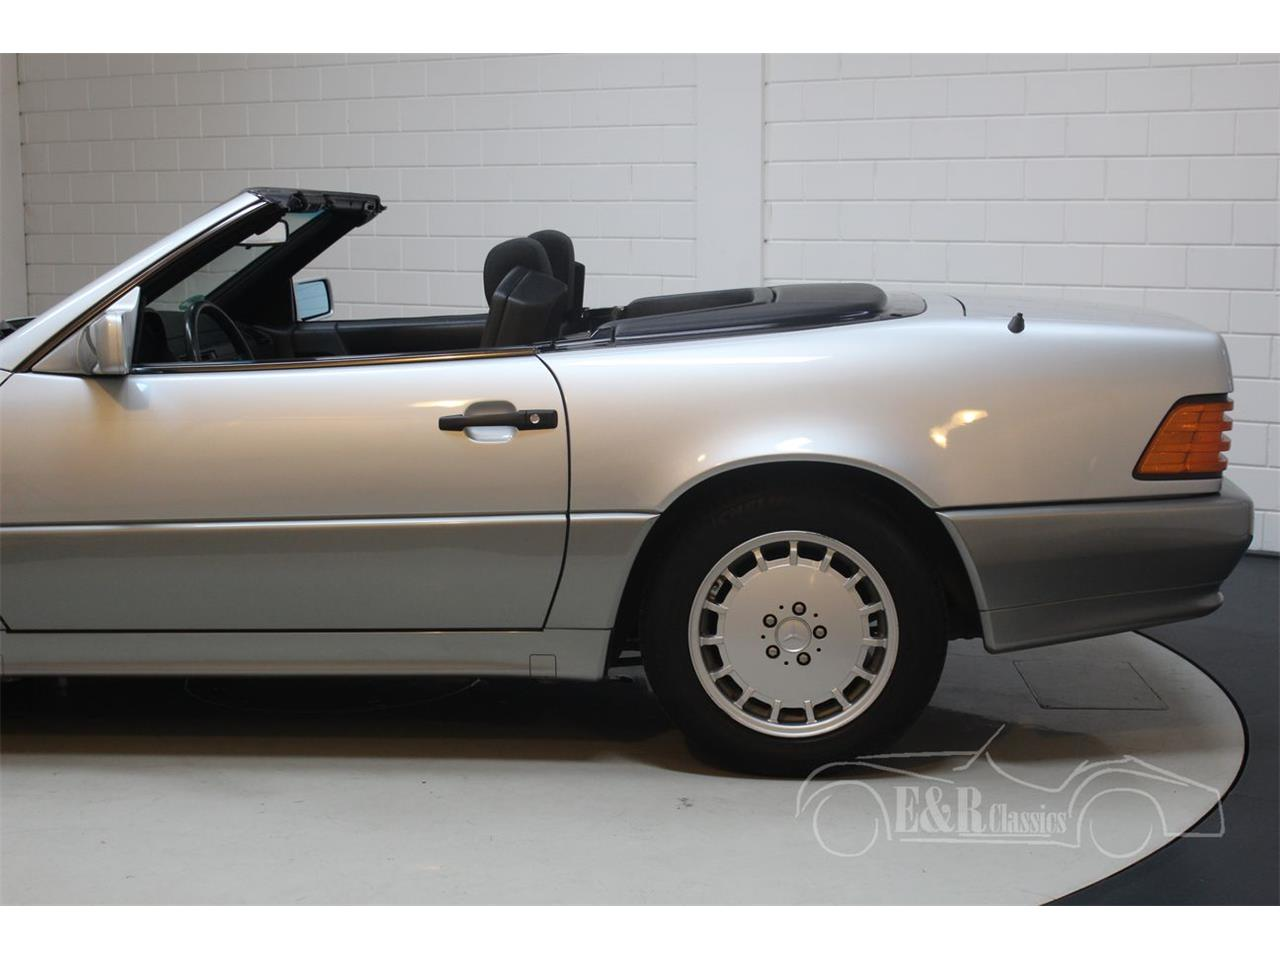 Large Picture of '91 Mercedes-Benz 500SL - $22,350.00 Offered by E & R Classics - Q33D